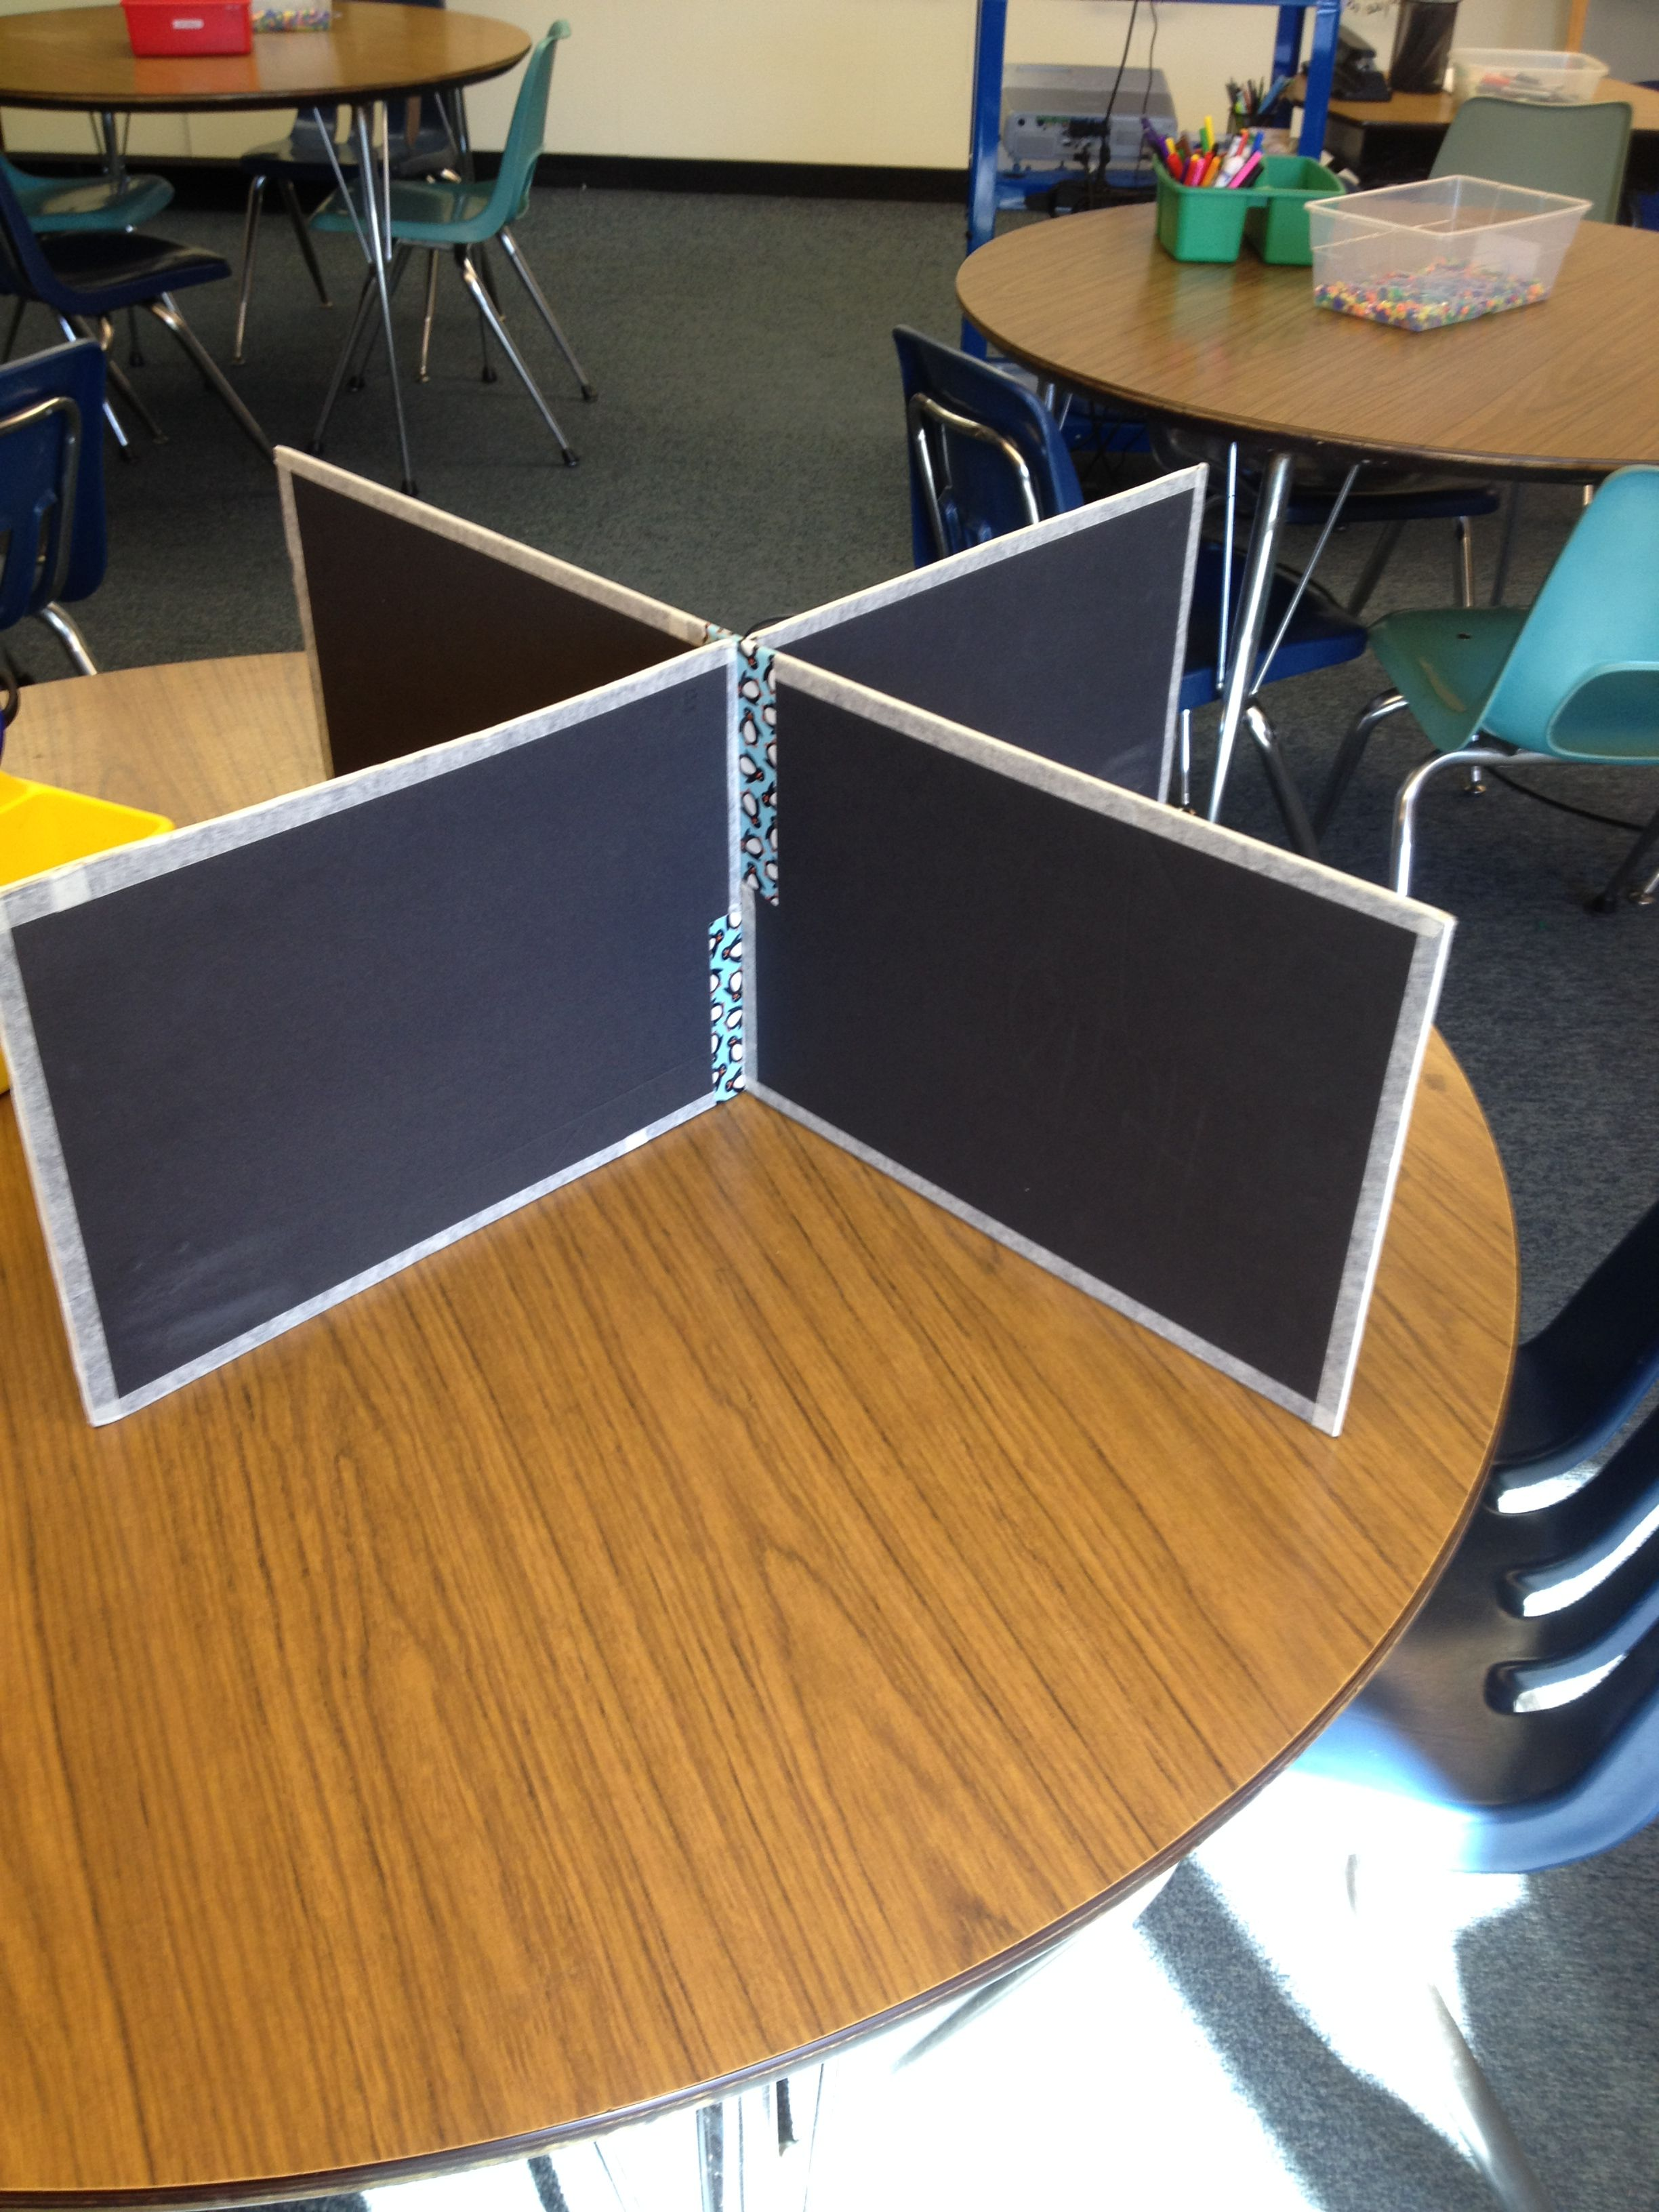 Classroom Table Dividers Made From Dollar Store Materials Works